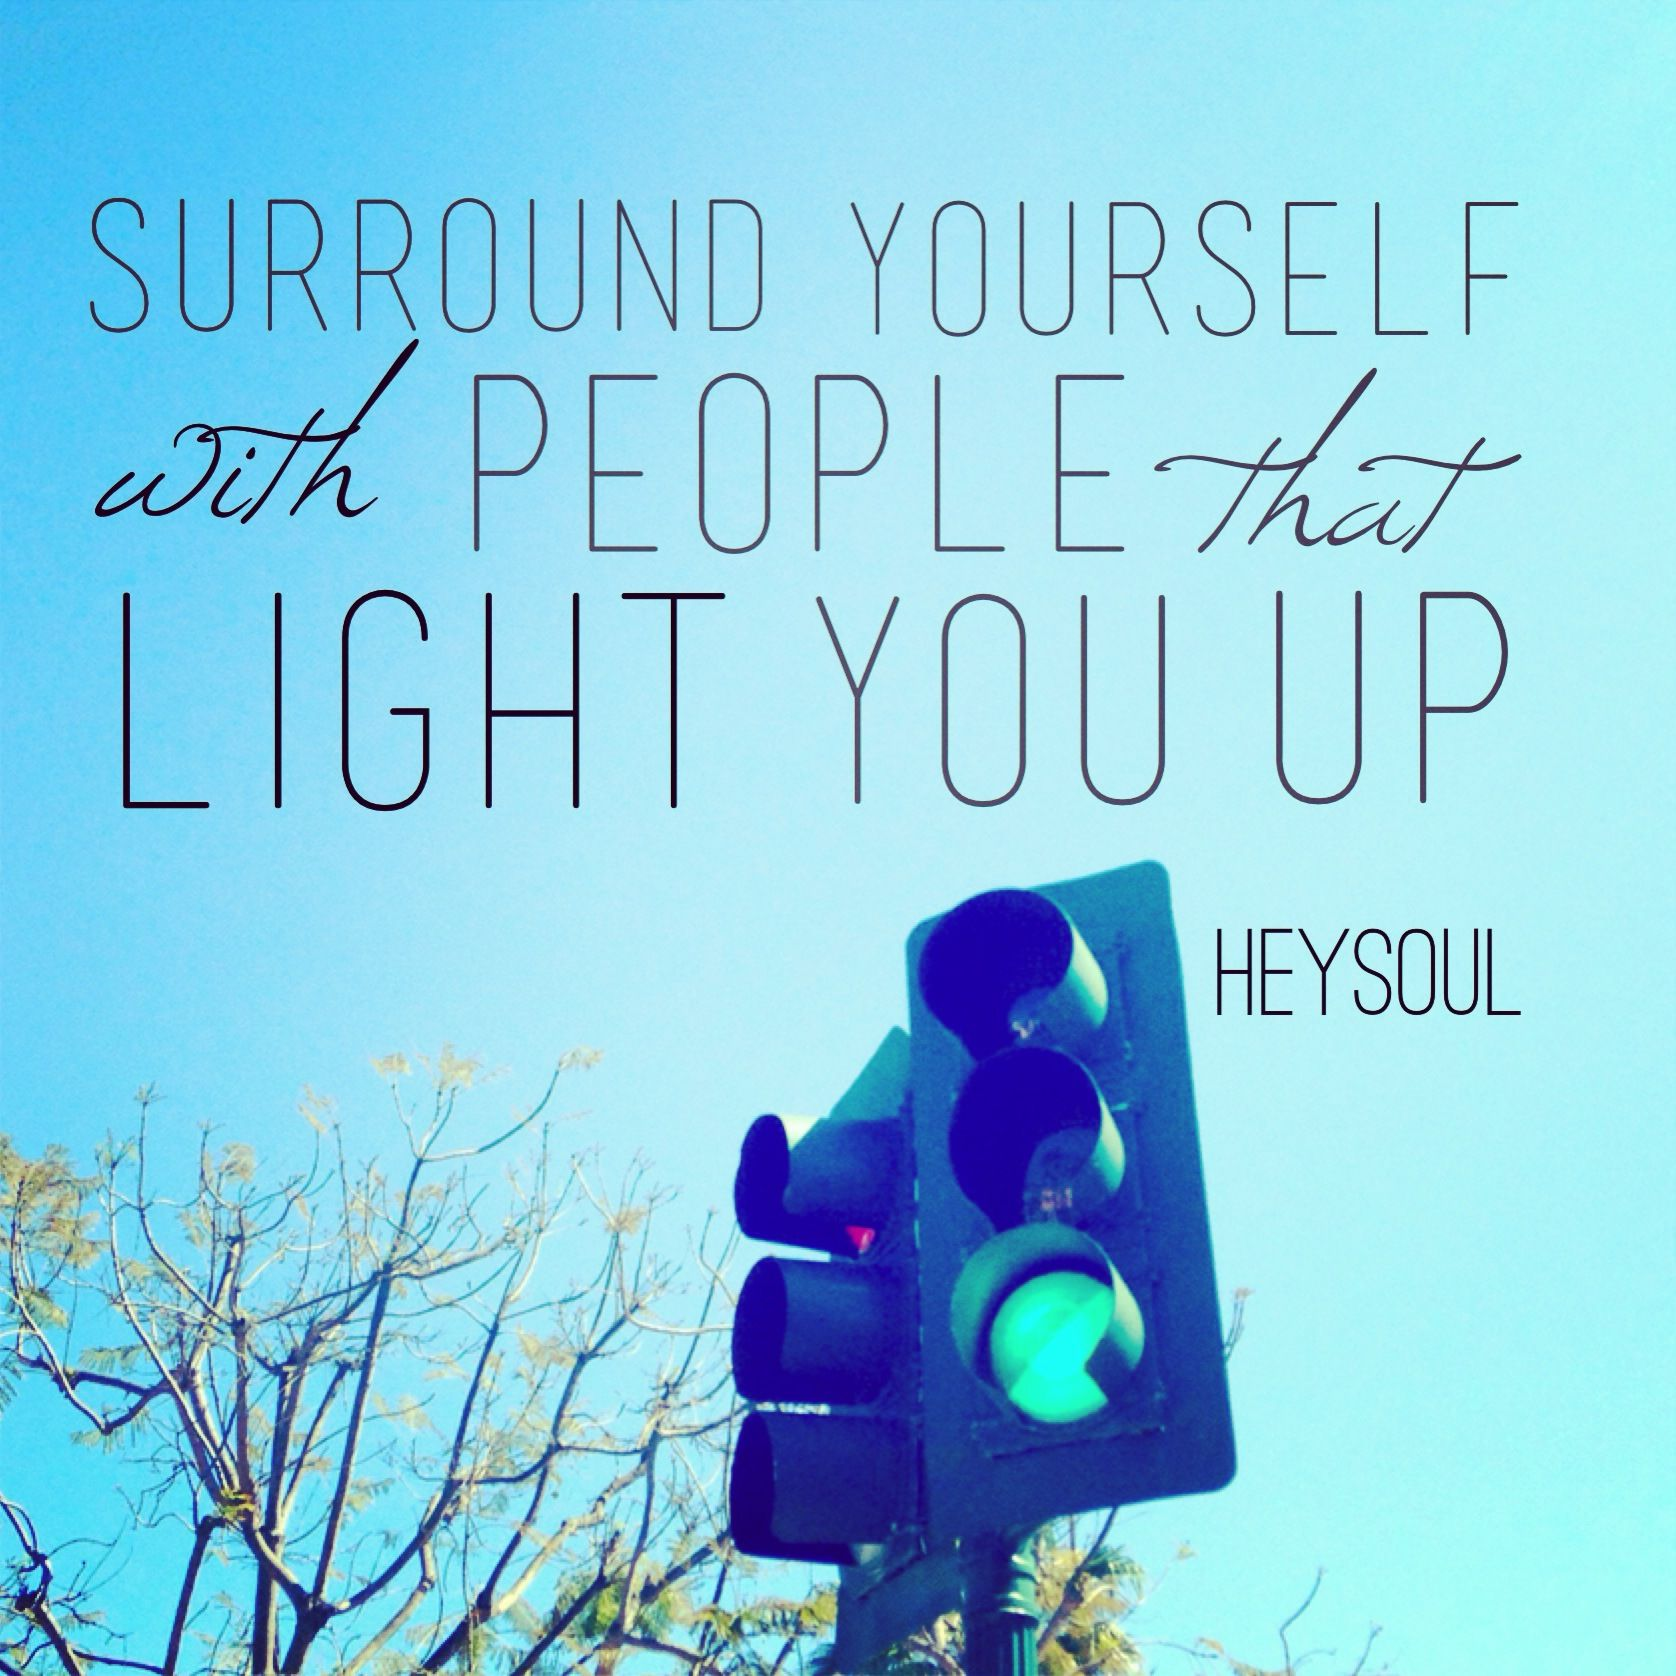 Inspirational Quotes About Friendships Surround Yourself With People That Light You Up Inspiration